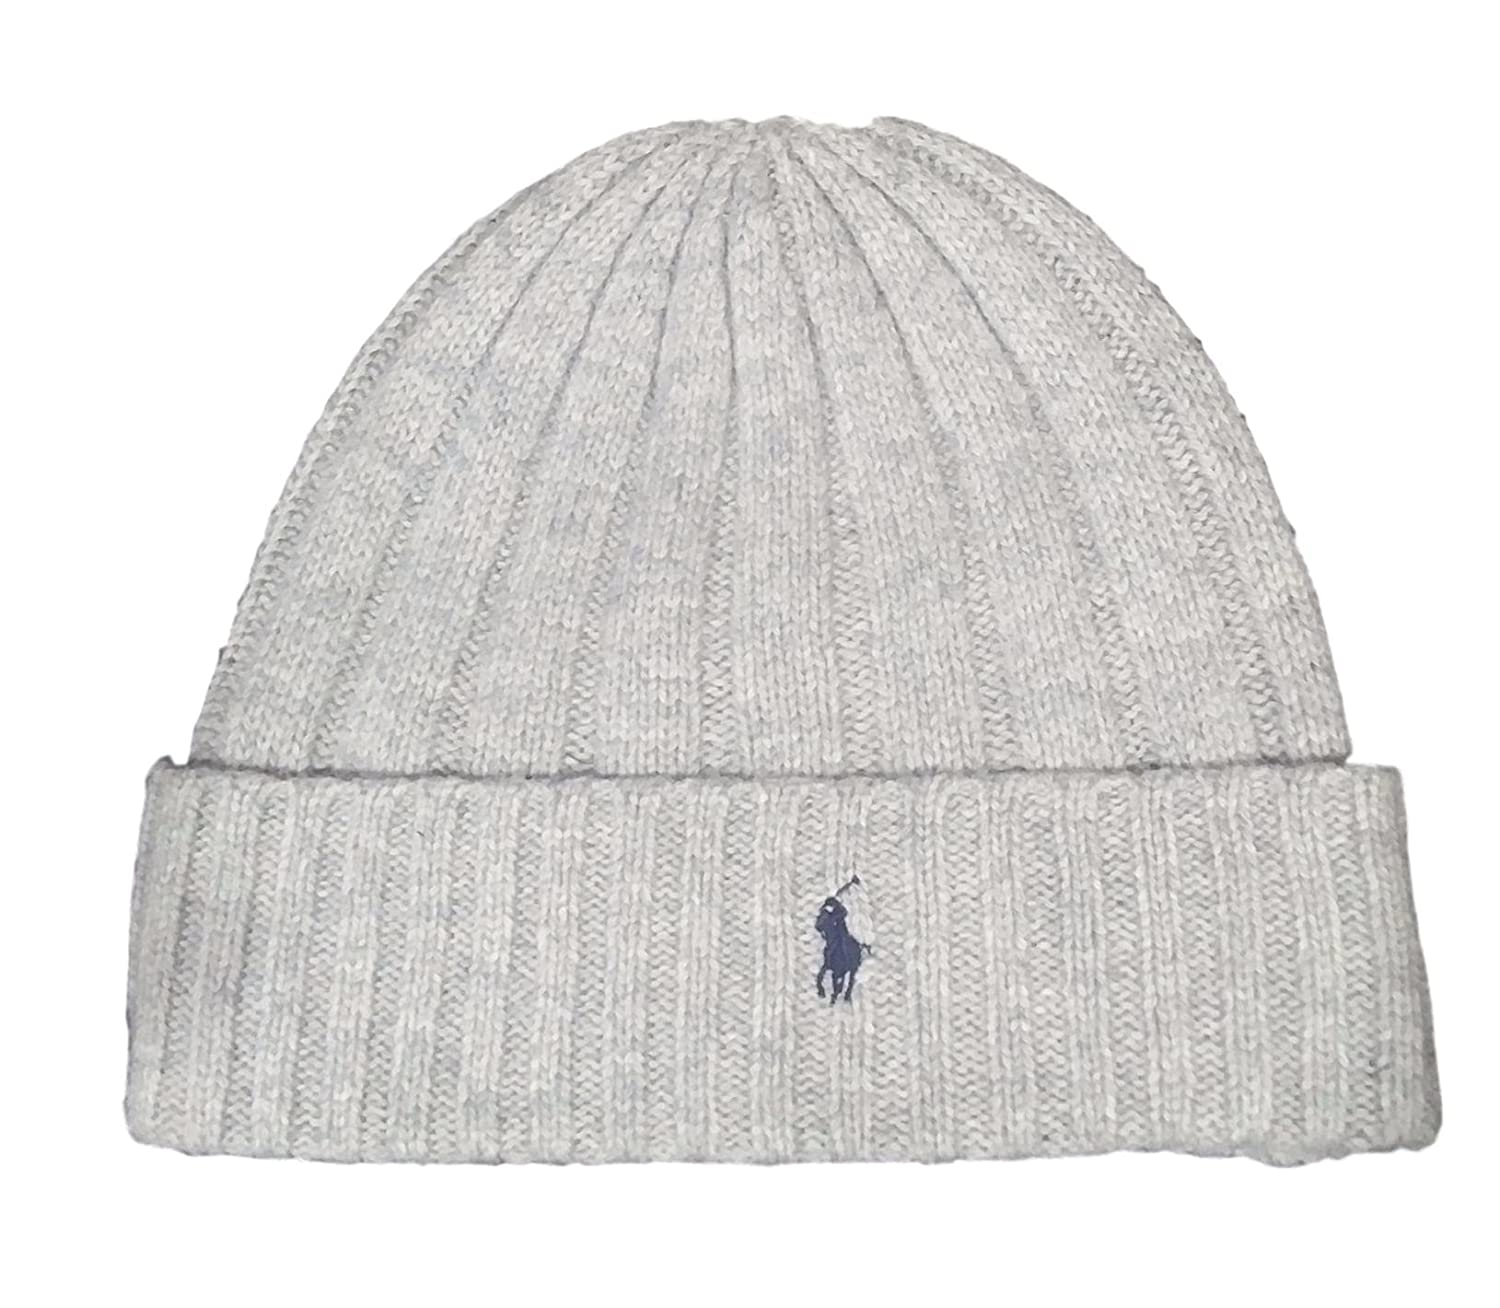 064da92ec45d99 Polo Ralph Lauren Unisex Lambswool Skullie Cap Light Gray Beanie Hat Wool/Nylon  OS: Amazon.co.uk: Clothing